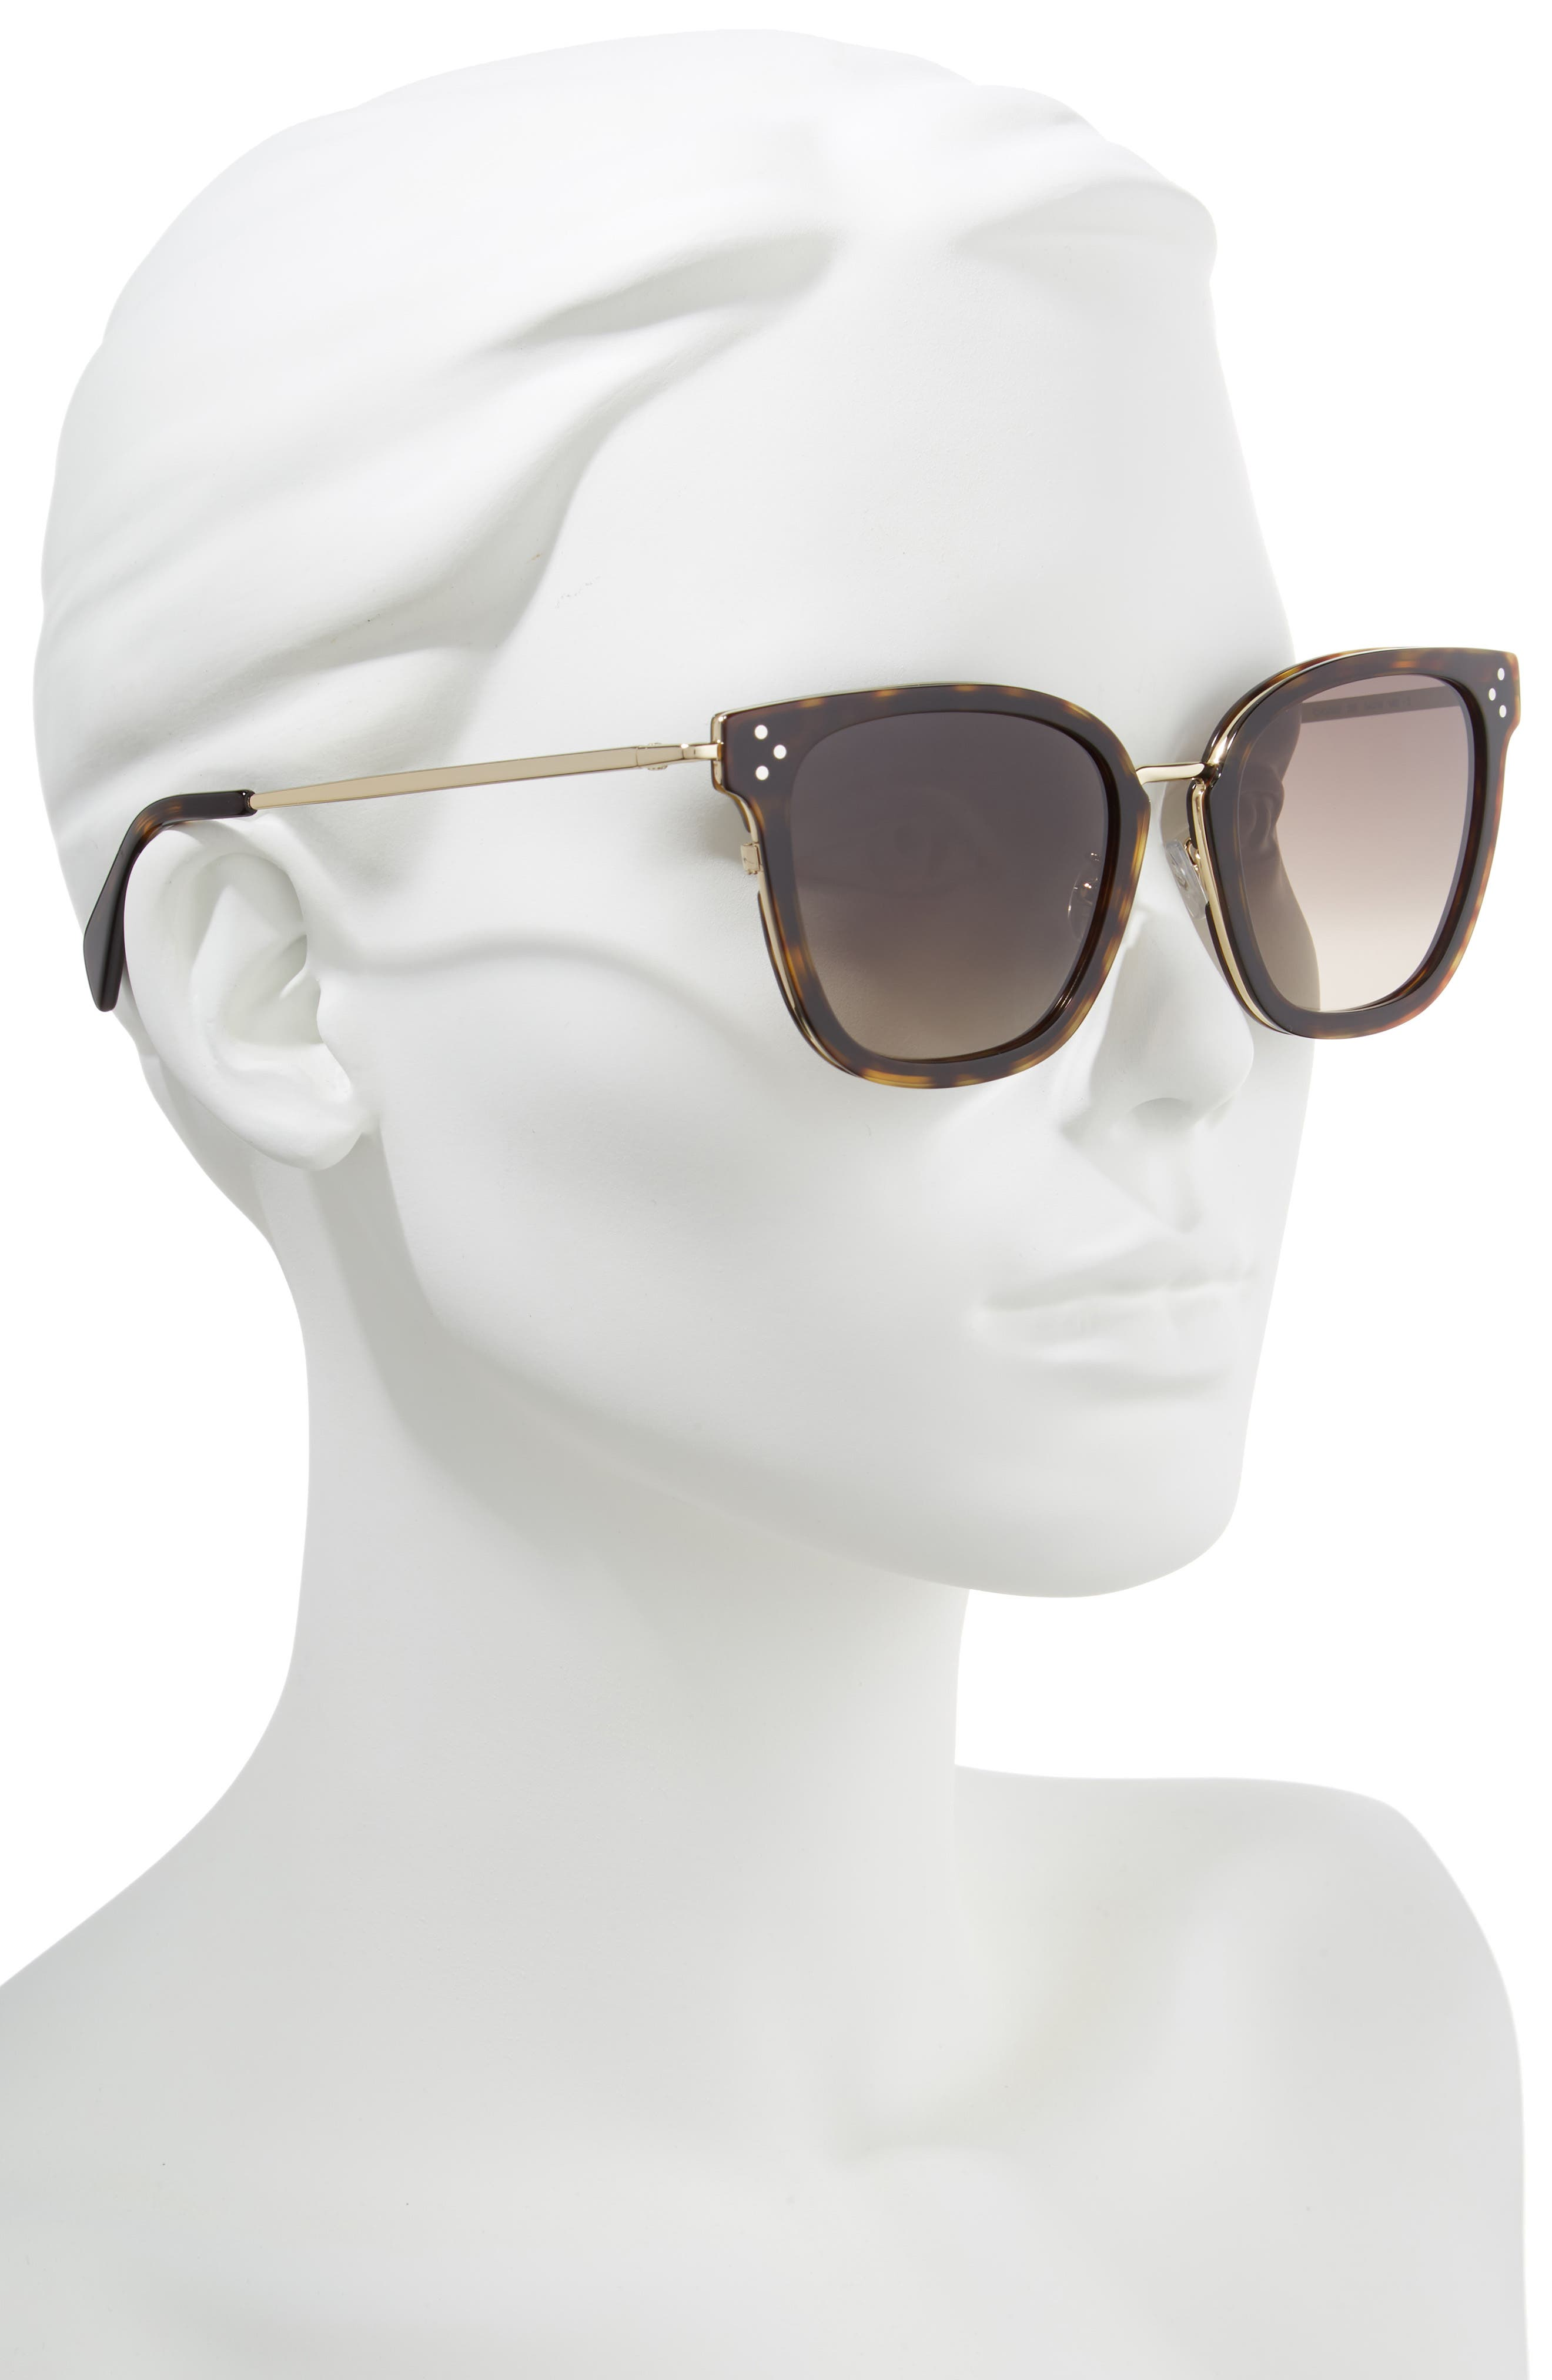 Special Fit 54mm Sunglasses,                             Alternate thumbnail 2, color,                             Havana/ Gold/ Brown